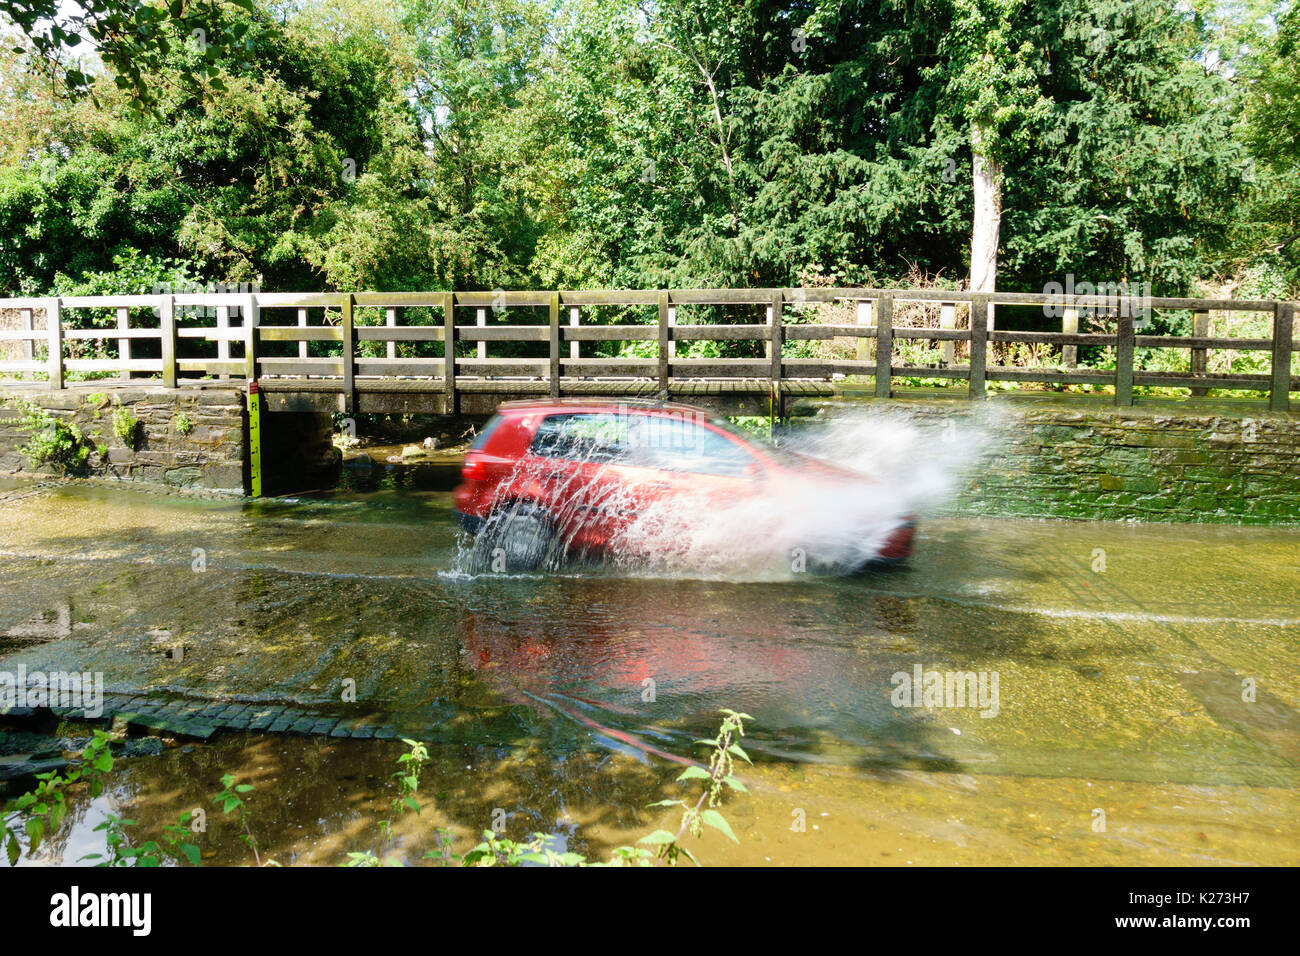 Car driving at speed through the ford at Rufford, Nottinghamshire. - Stock Image